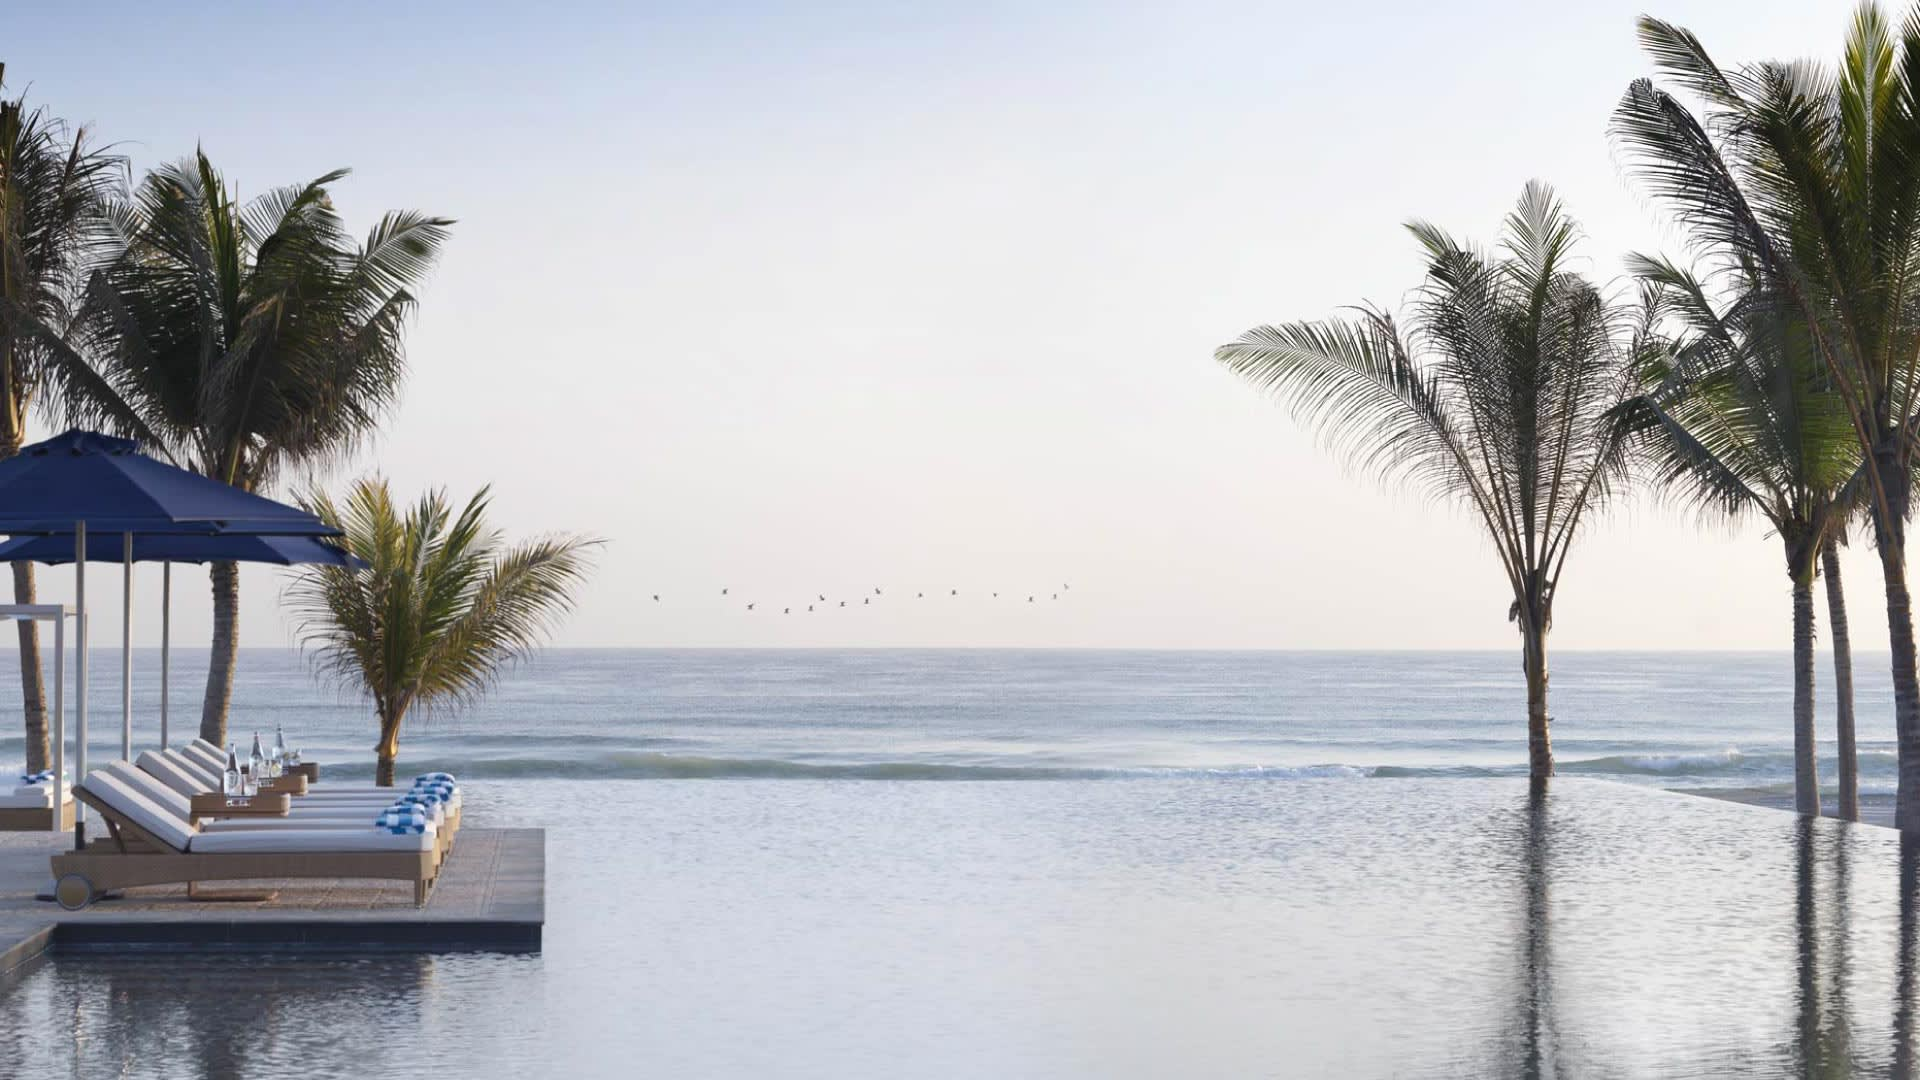 https://assets.anantara.com/image/upload/q_auto,f_auto/media/minor/anantara/images/al-baleed-resort-salalah-by-anantara/the-resort/al_baleed_by_anantara_pool_header_1920x1080.jpg